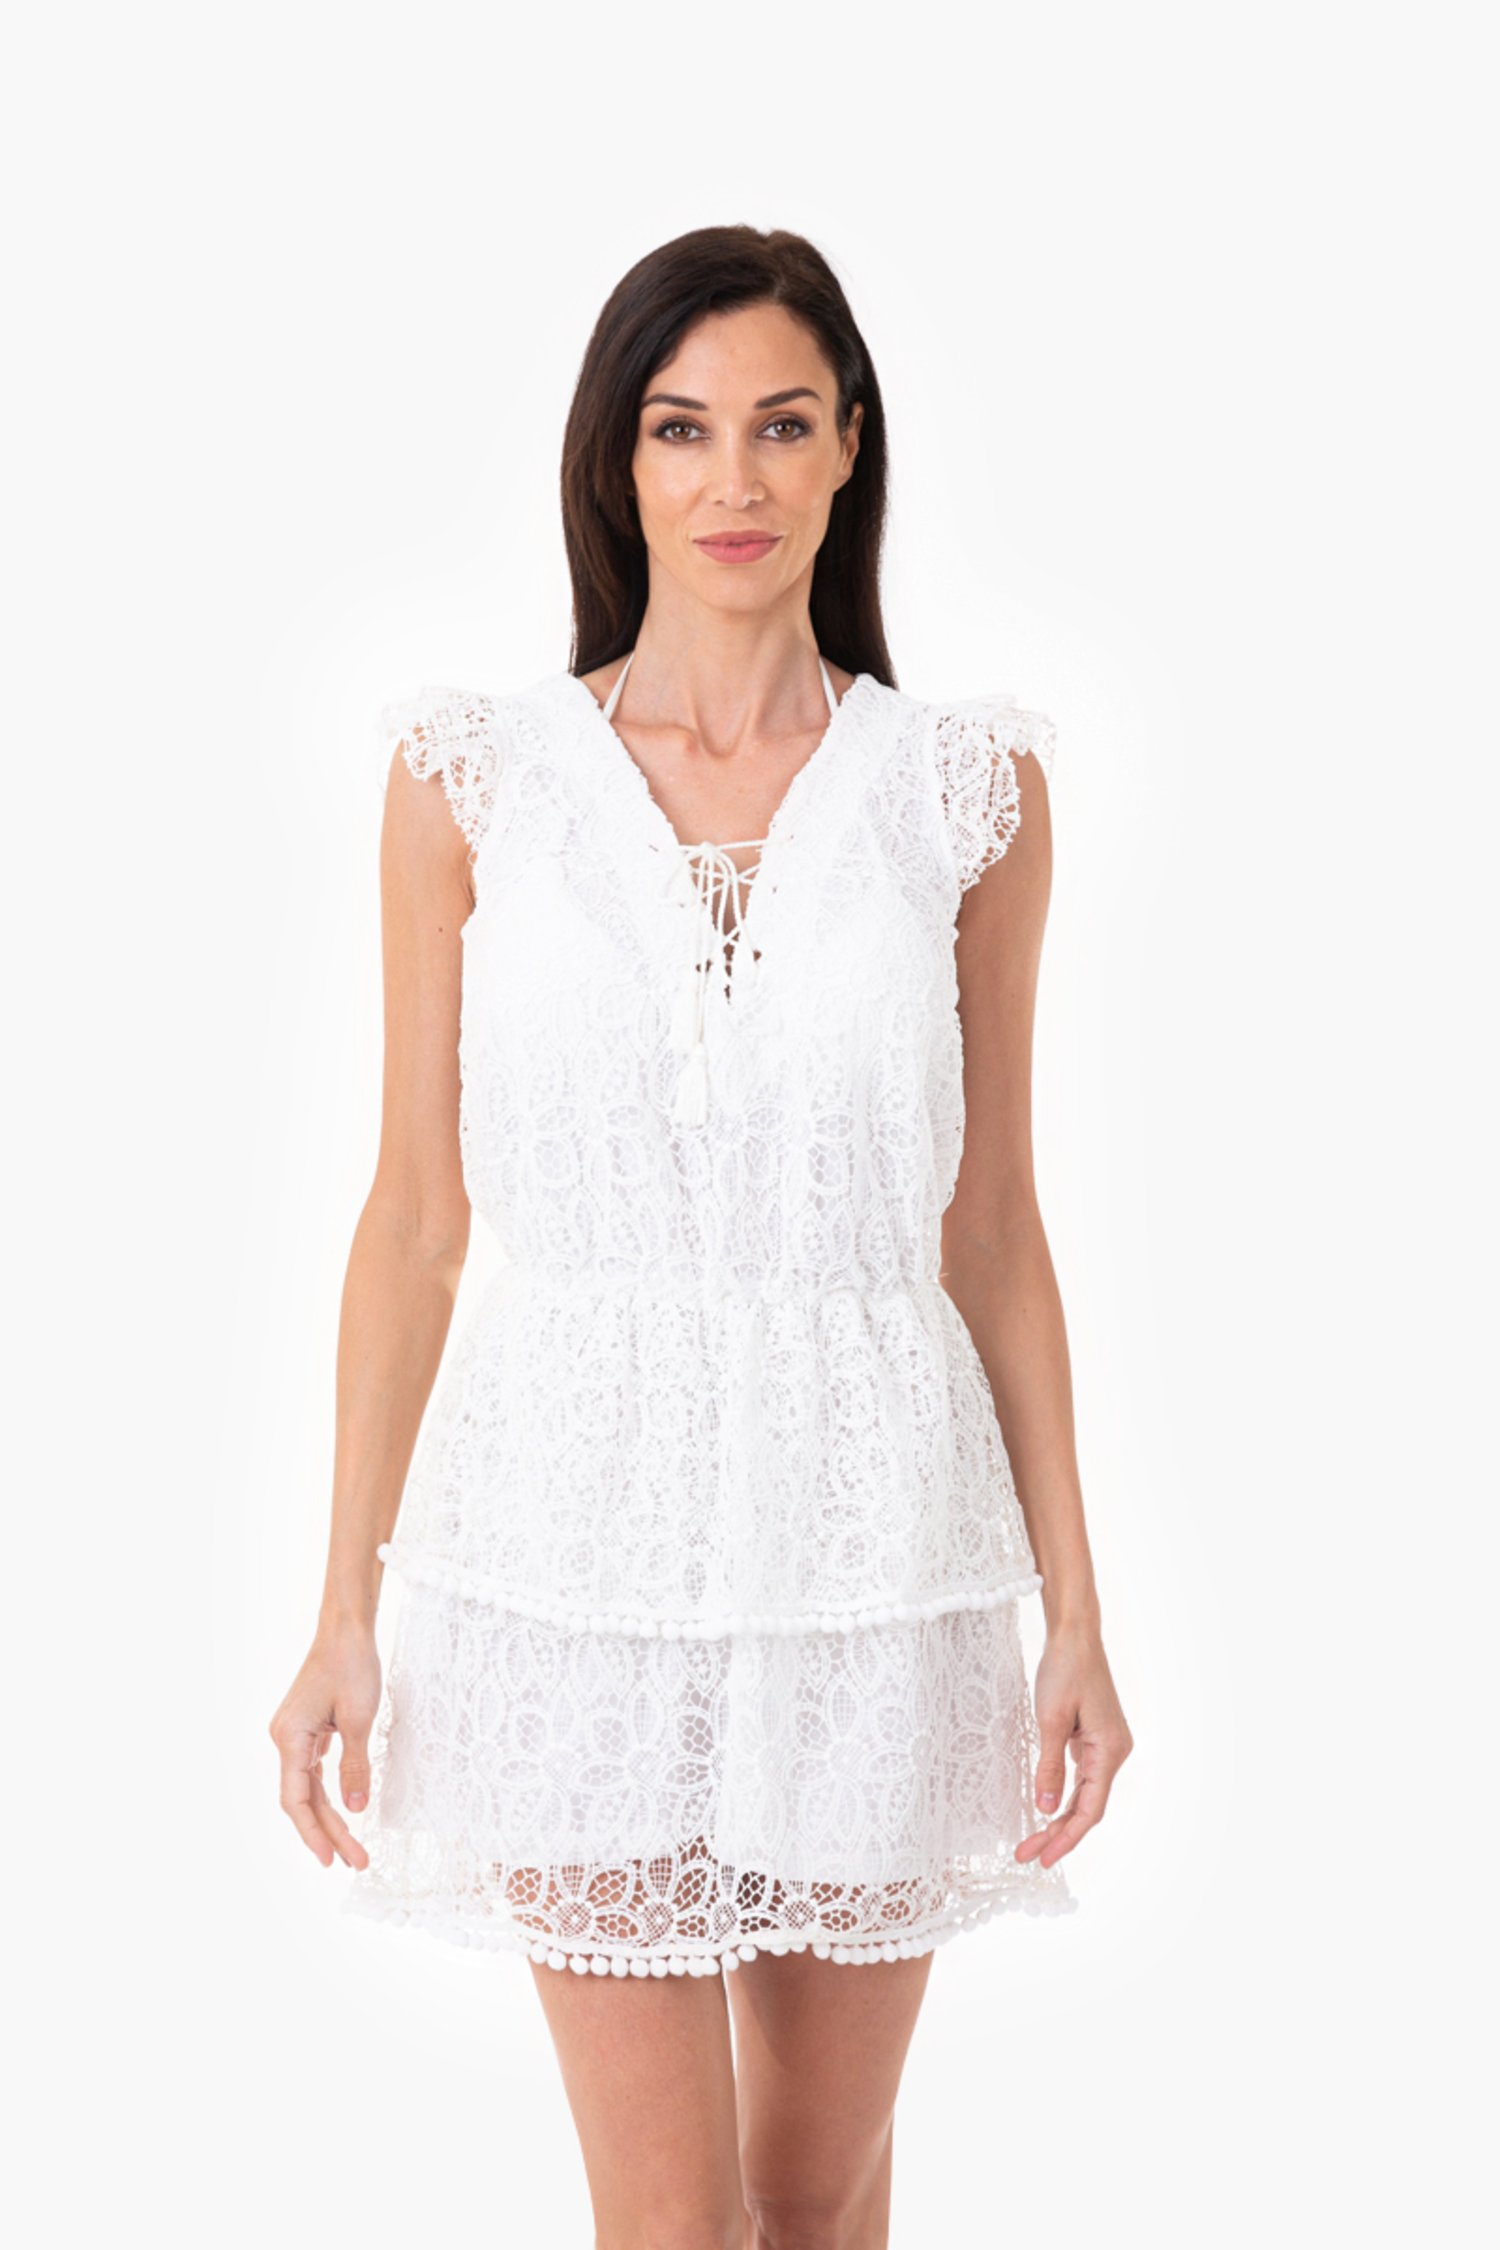 MACRAME' LACE SHORT DRESS - Pizzo Macrame' Bianco